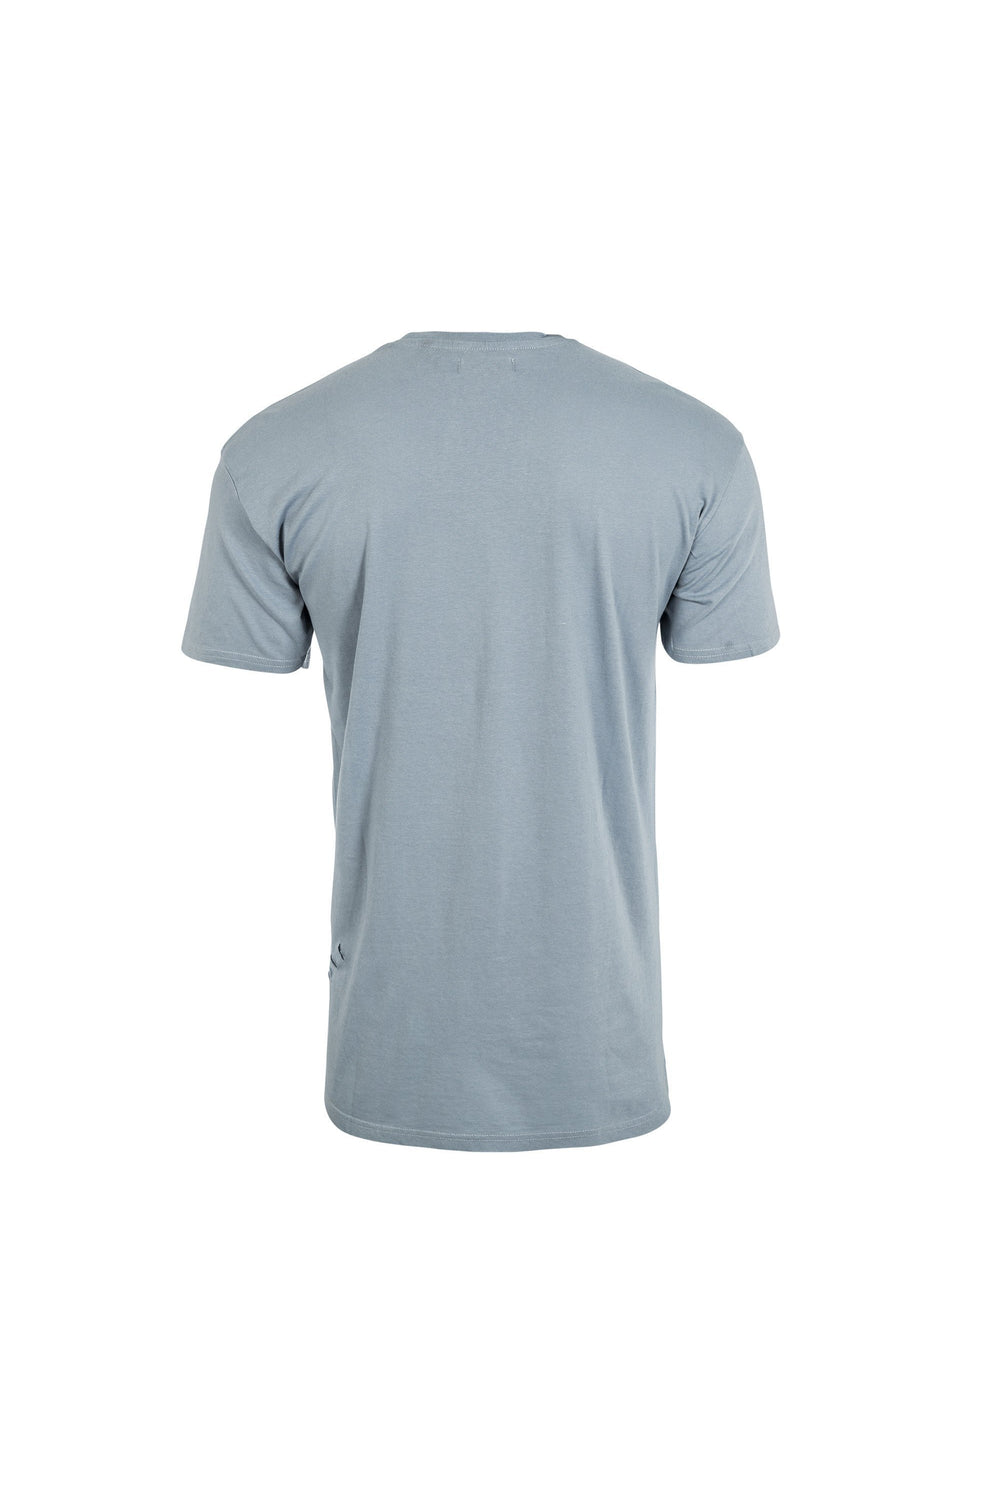 T-Shirts - Longline Oversize Ripped T-Shirt Dusty Blue